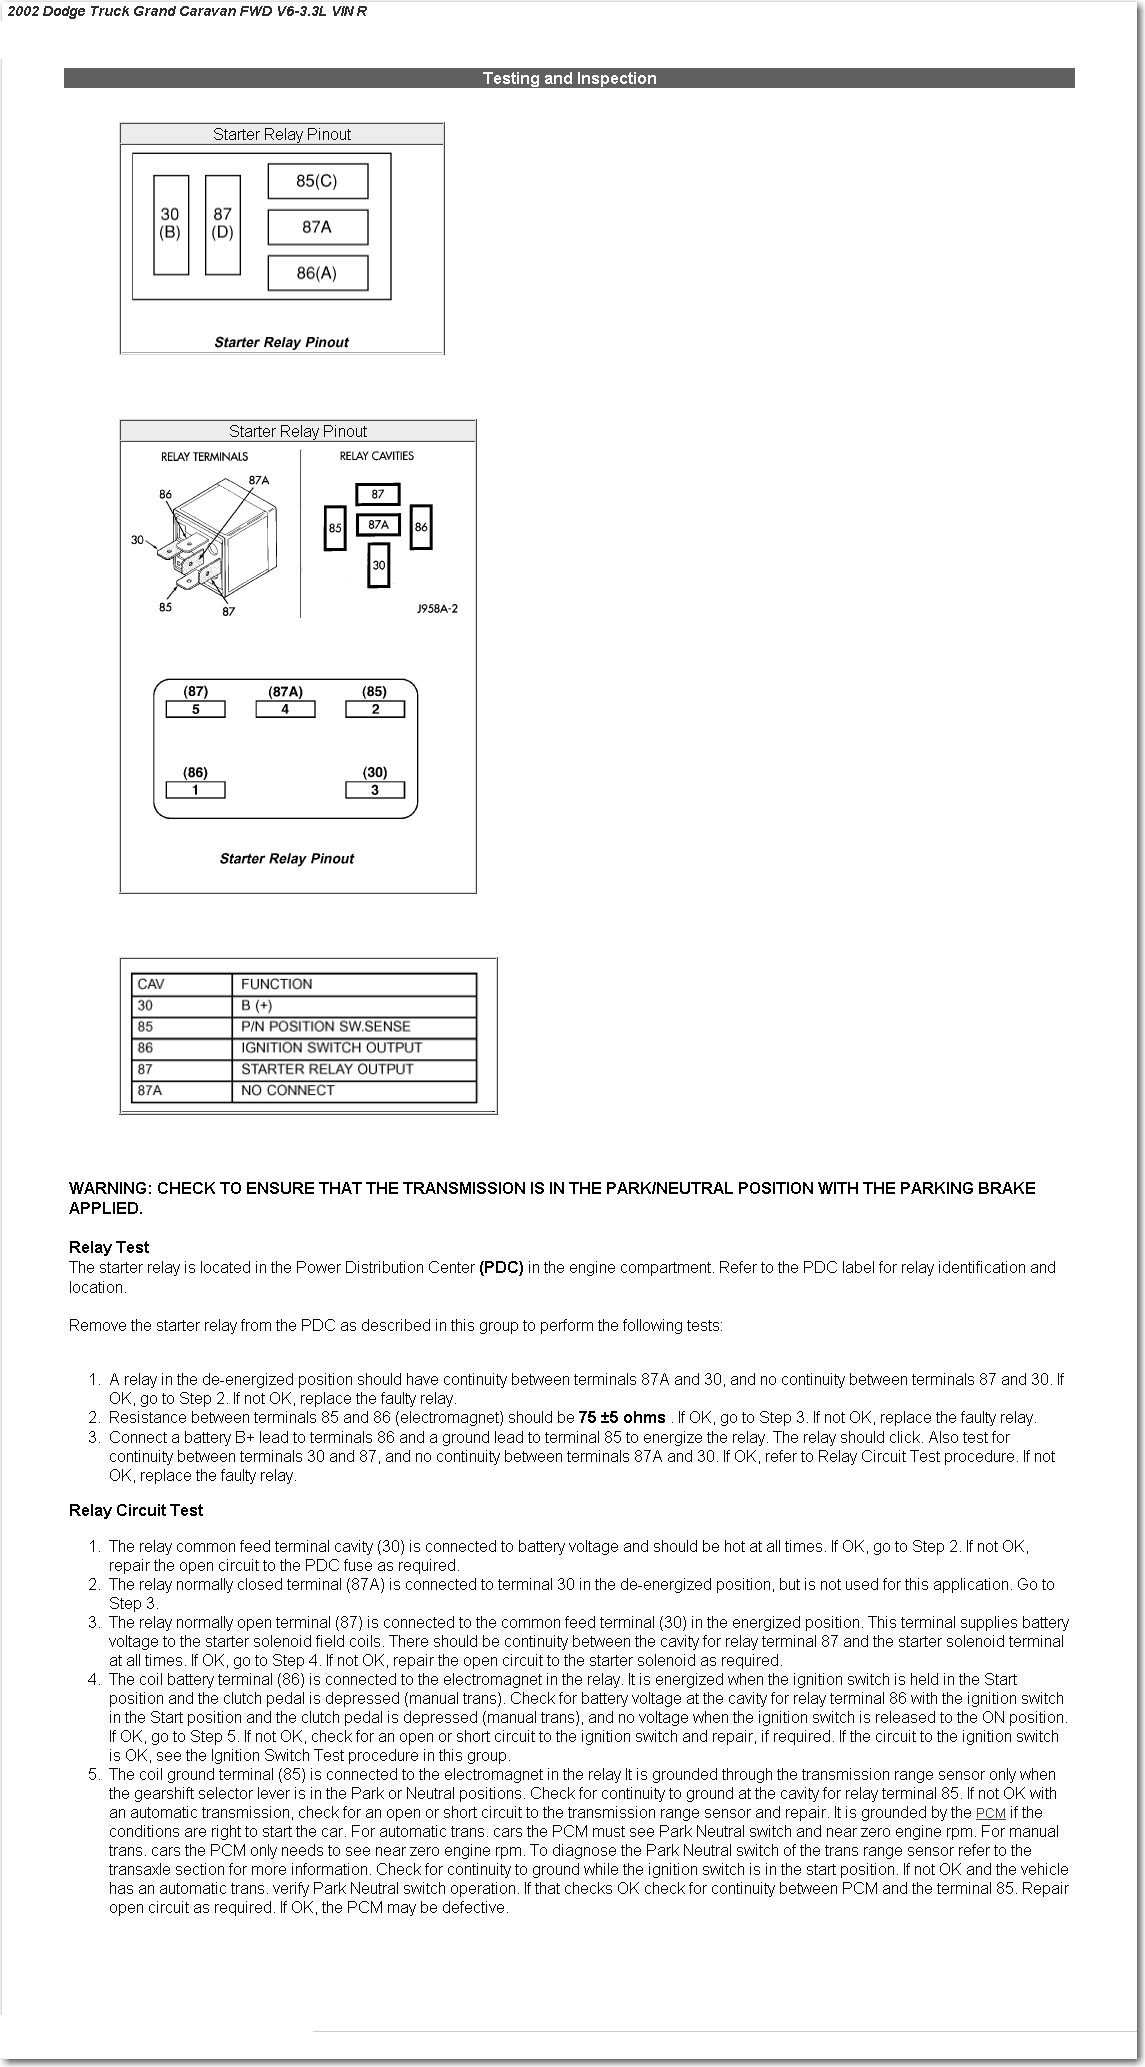 Ng 7393 Wiring Diagram For 2000 Dodge Grand Caravan In Addition 2002 Dodge Wiring Diagram